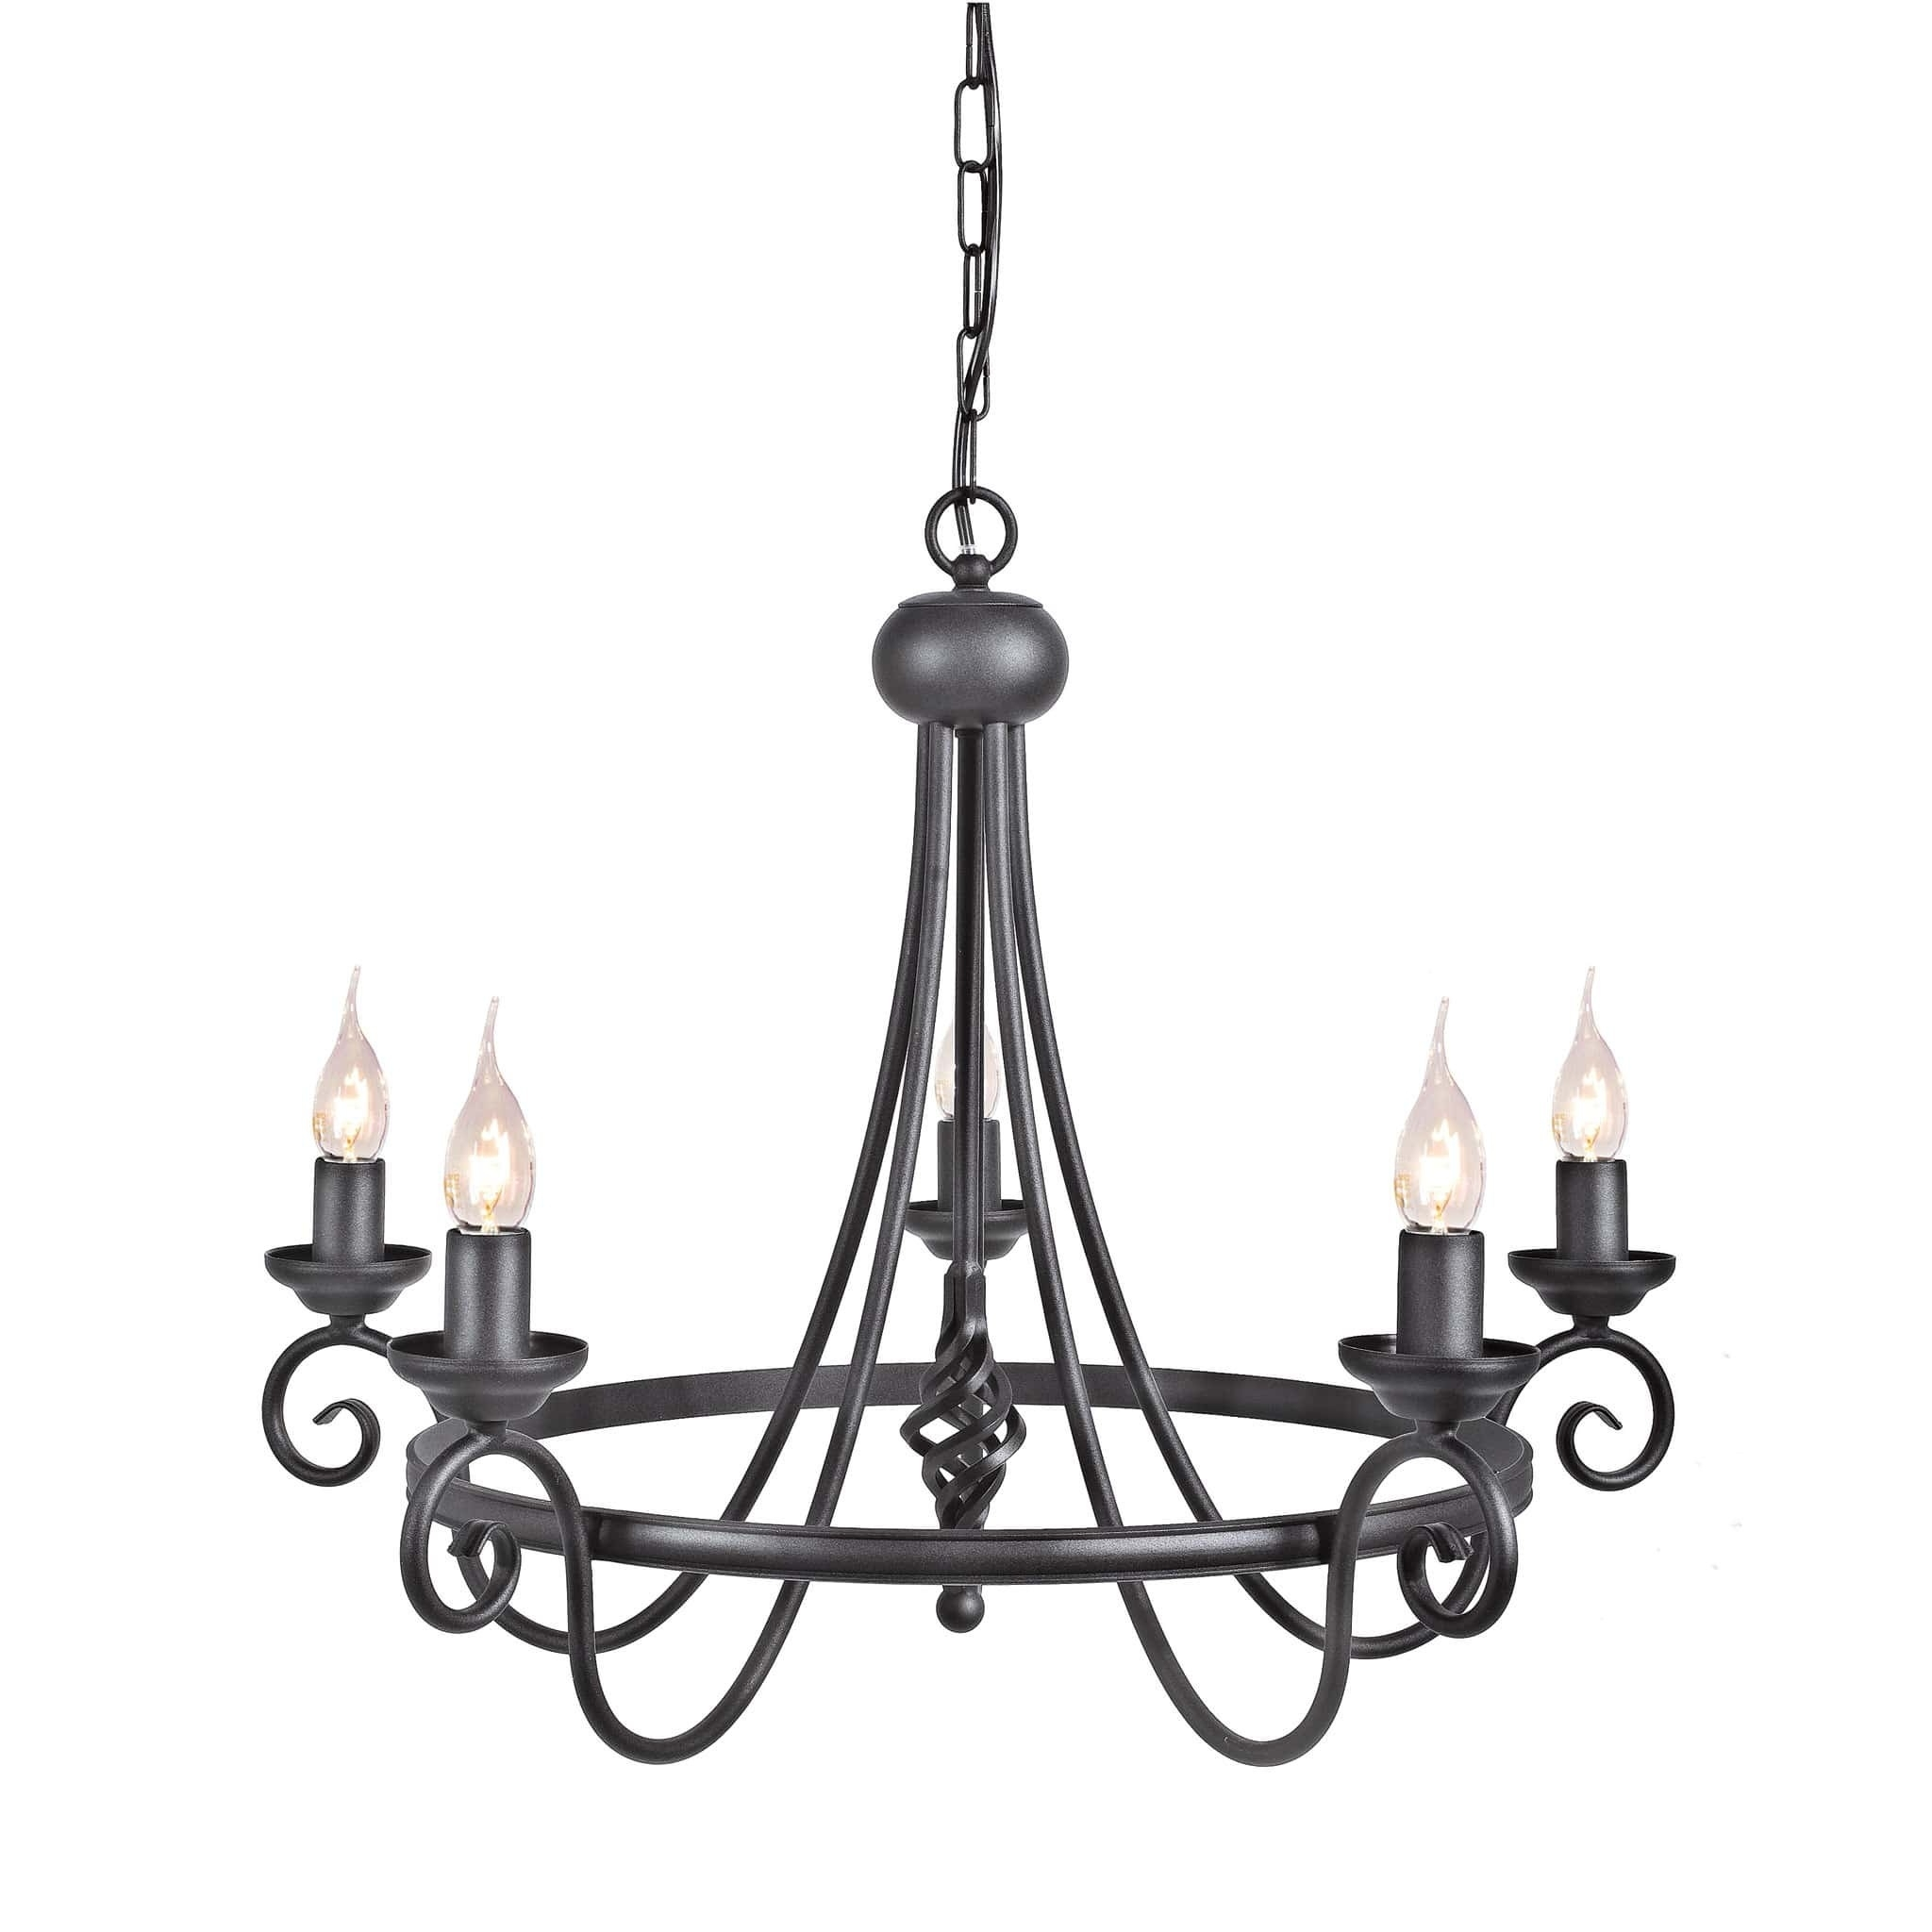 Chandeliers With Black Shades – Chandelier Showroom Intended For Preferred Chandeliers With Black Shades (View 13 of 15)